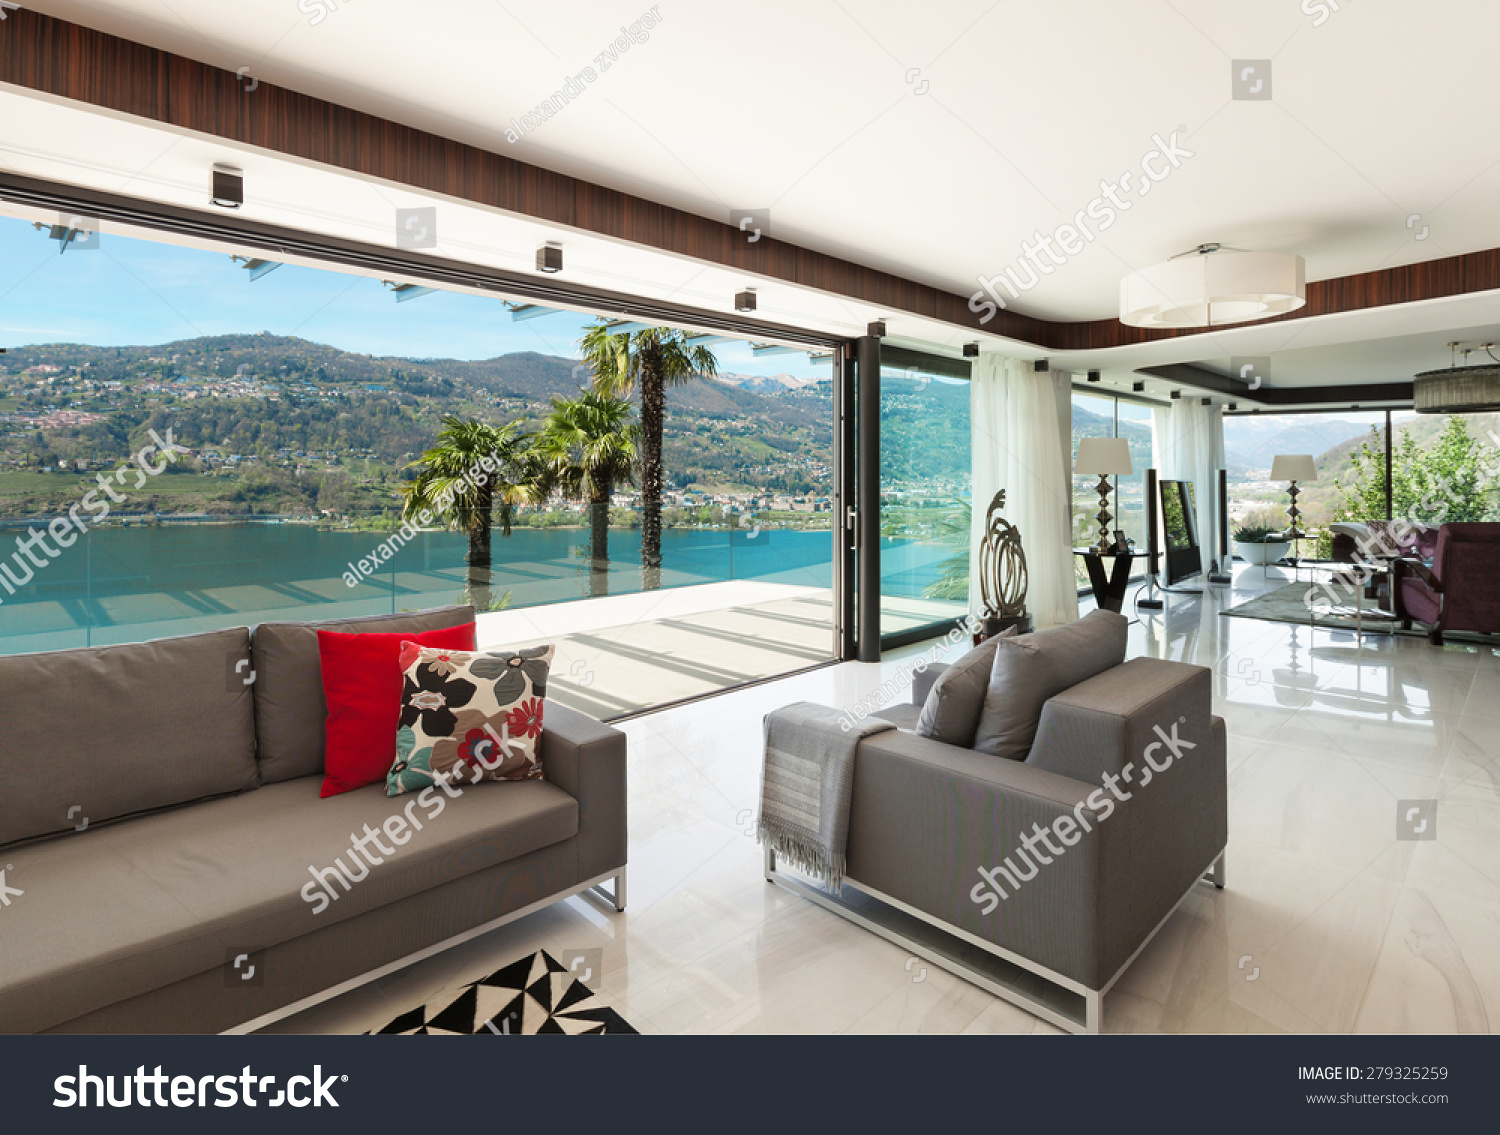 Architecture Modern House Beautiful Veranda Overlooking Stock